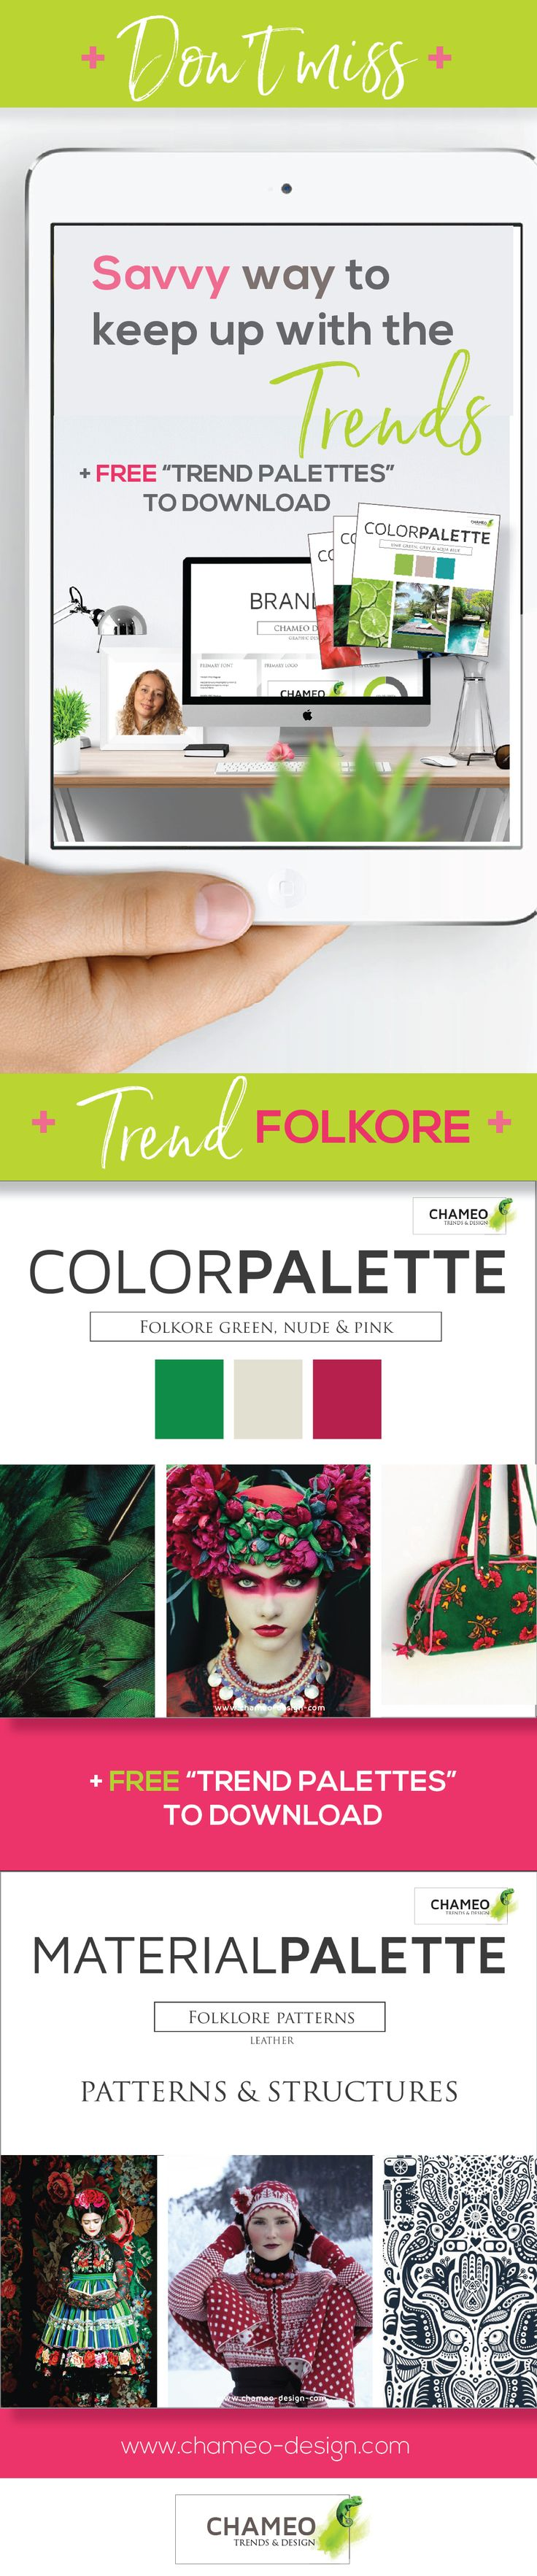 """Savvy way to keep up with Design trends! + FREE DOWNLOAD of """"Trends palettes"""". Find trends from CMF DESIGN, patterns, finishes, structures, textiles, wood, metals to color, color combinations, graphic trends, typography, branding. Get acess to our FREE RESOURCE library. Chameo Design keeps you inspired!"""